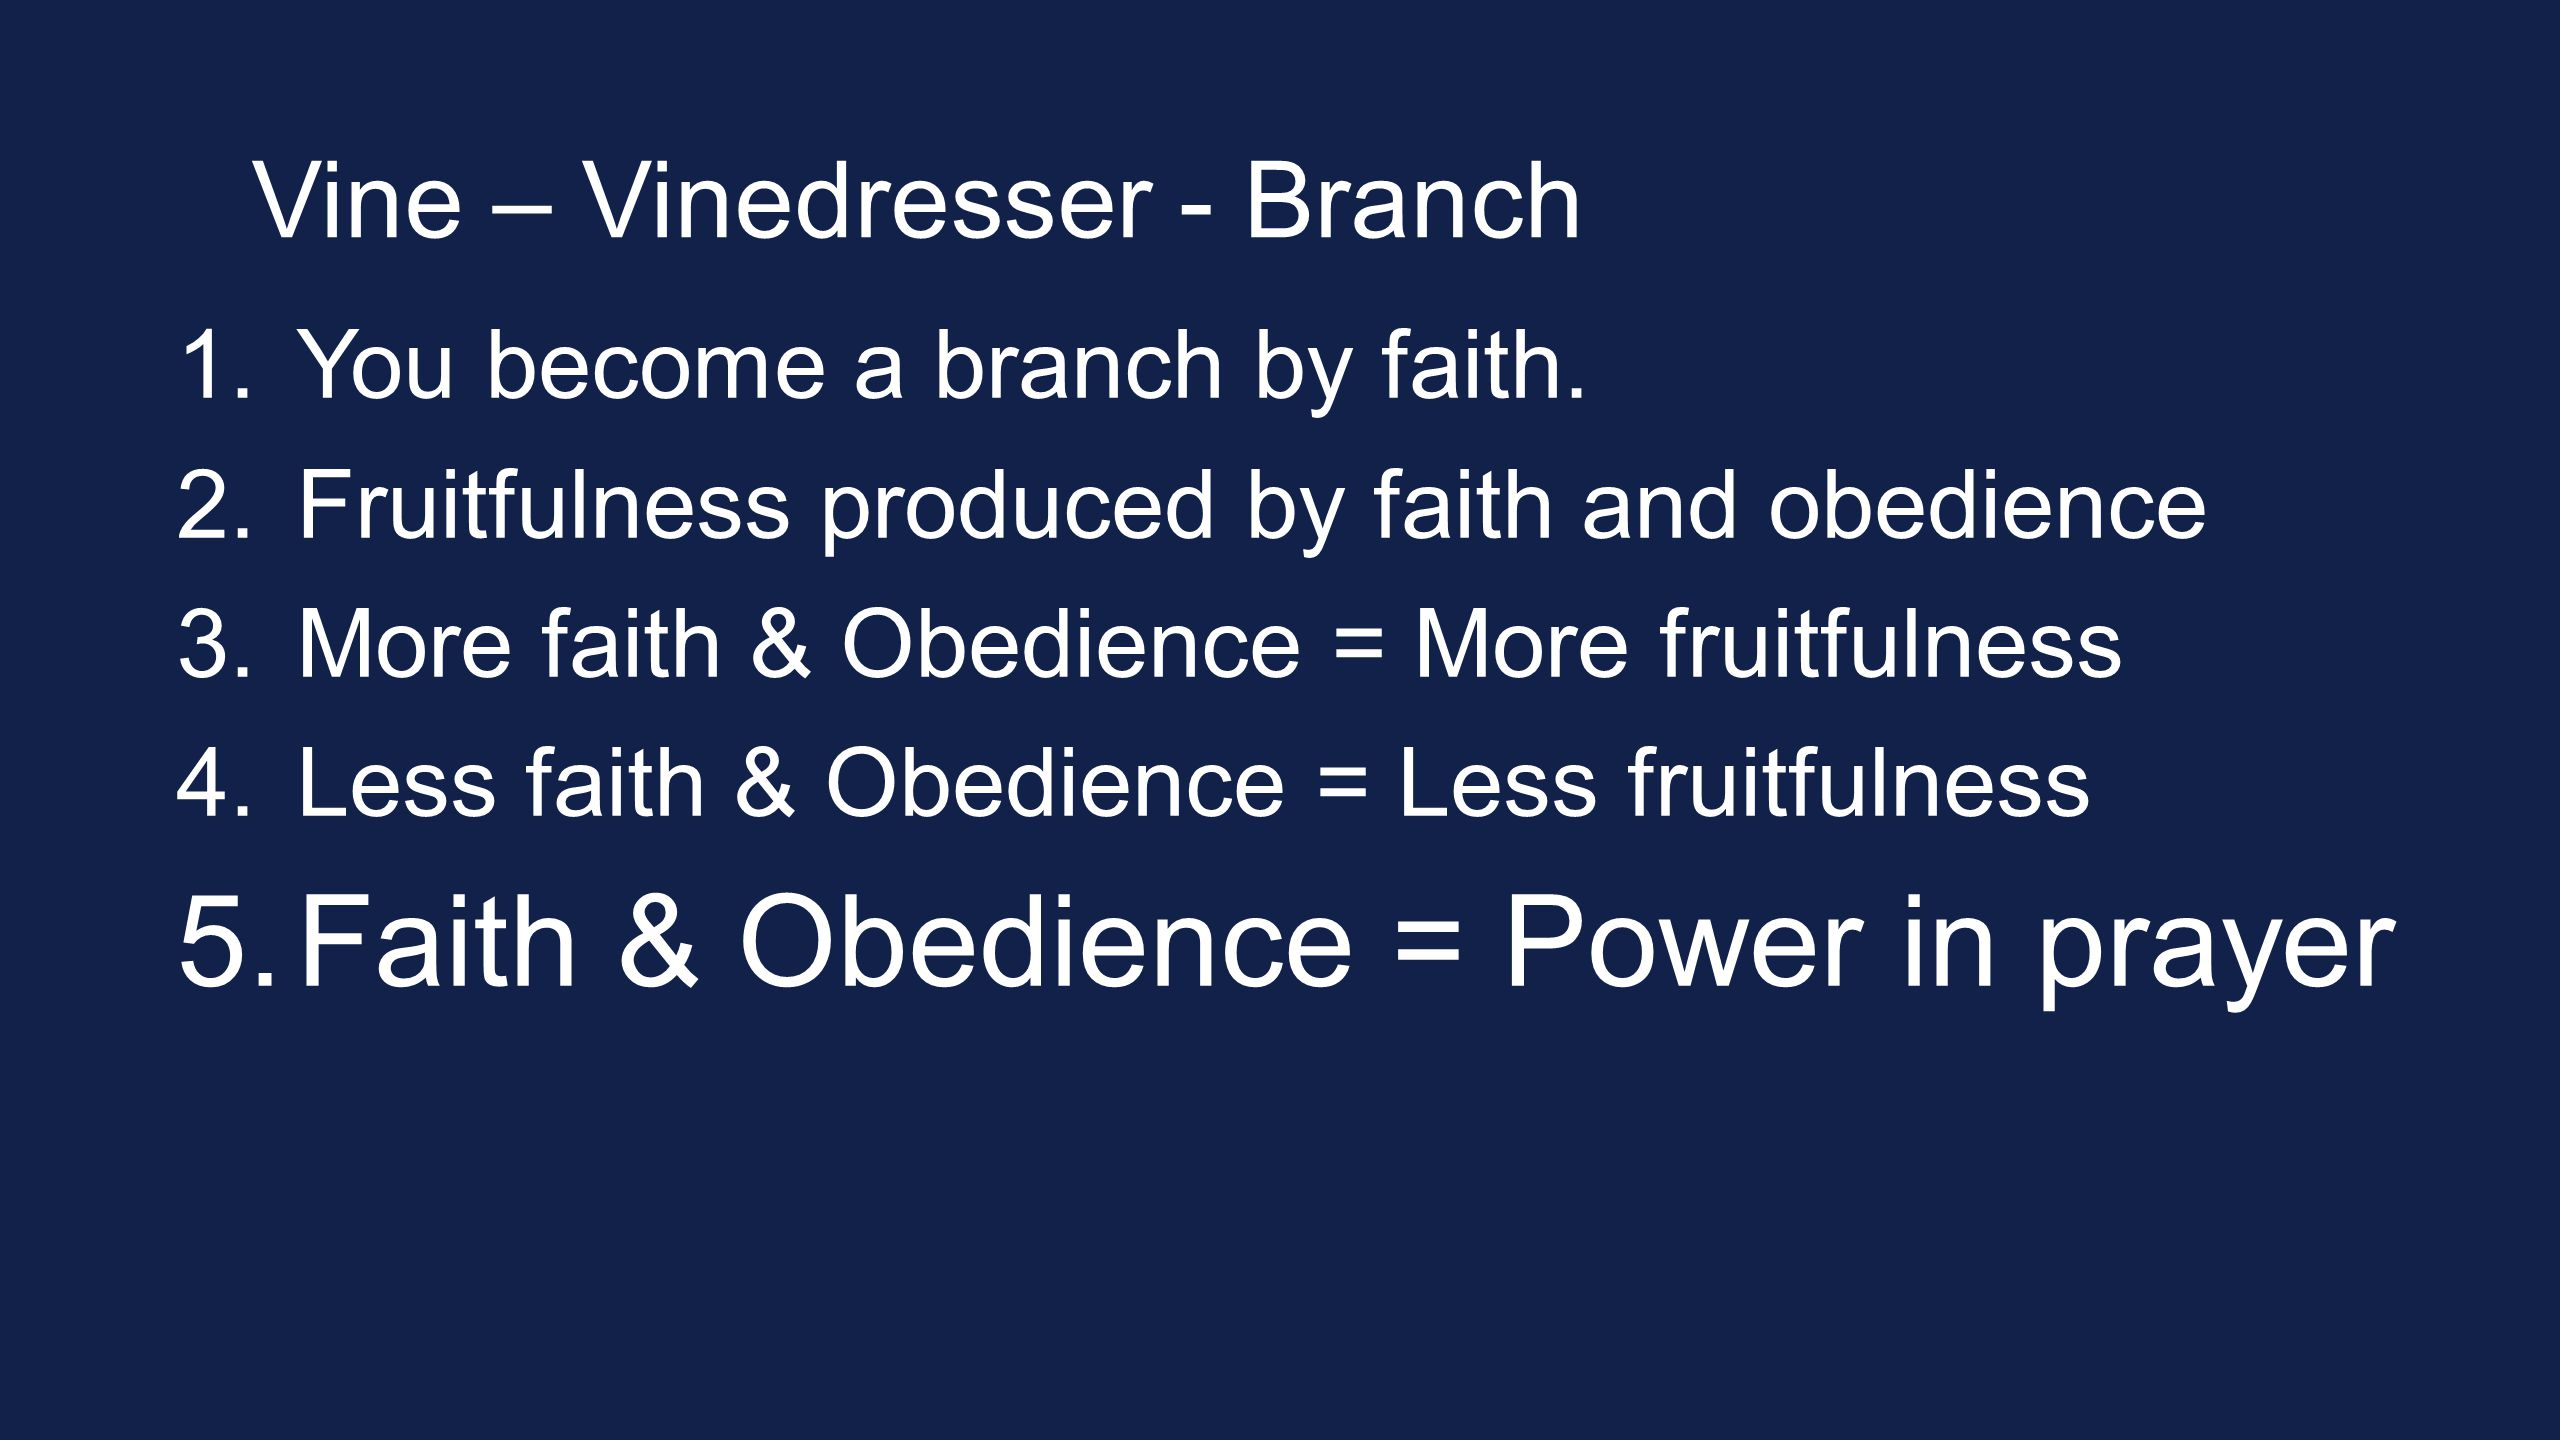 Vine – Vinedresser - Branch 1.You become a branch by faith.